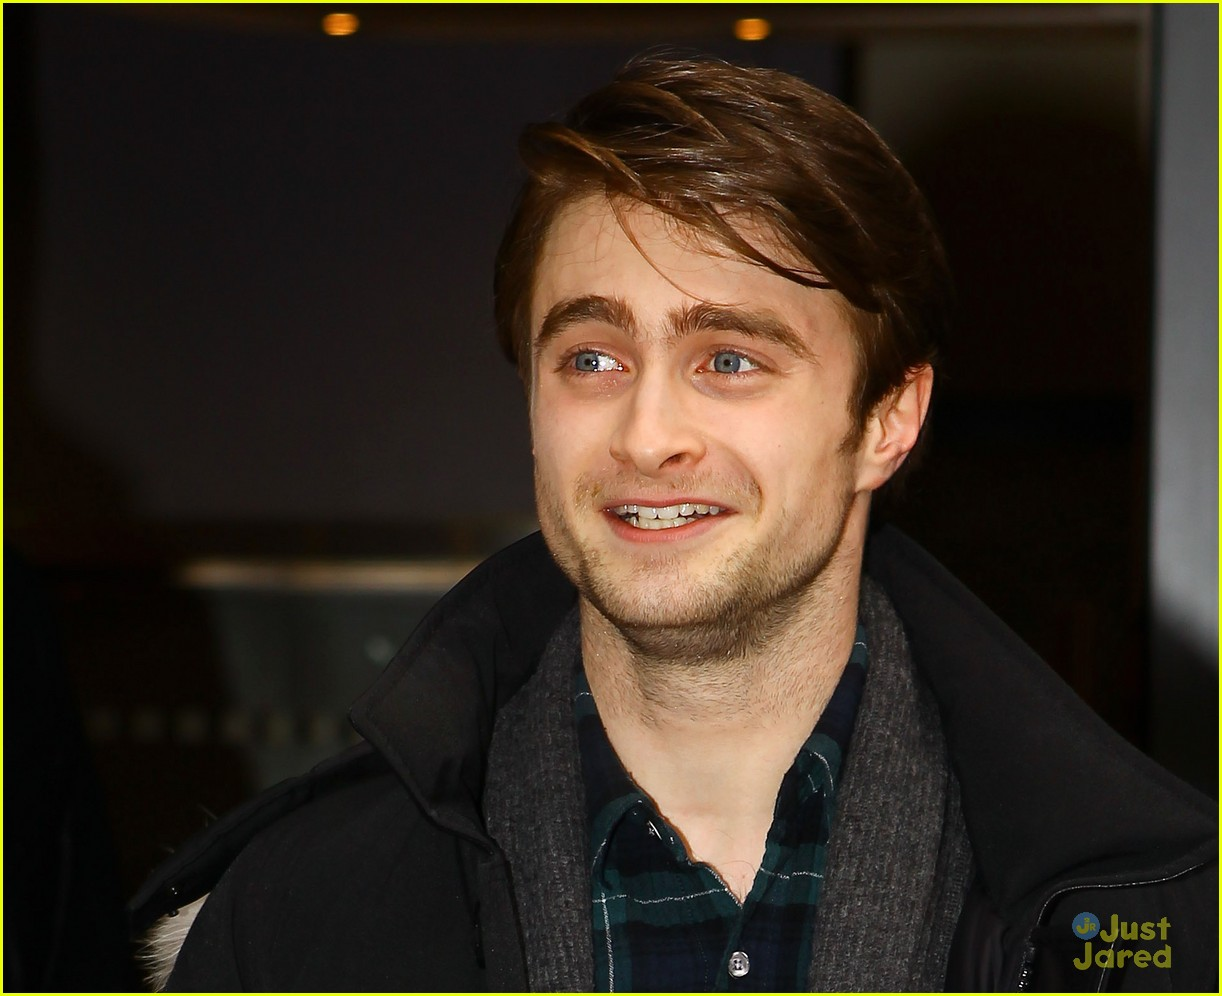 daniel_radcliffe_03_wenn3720894